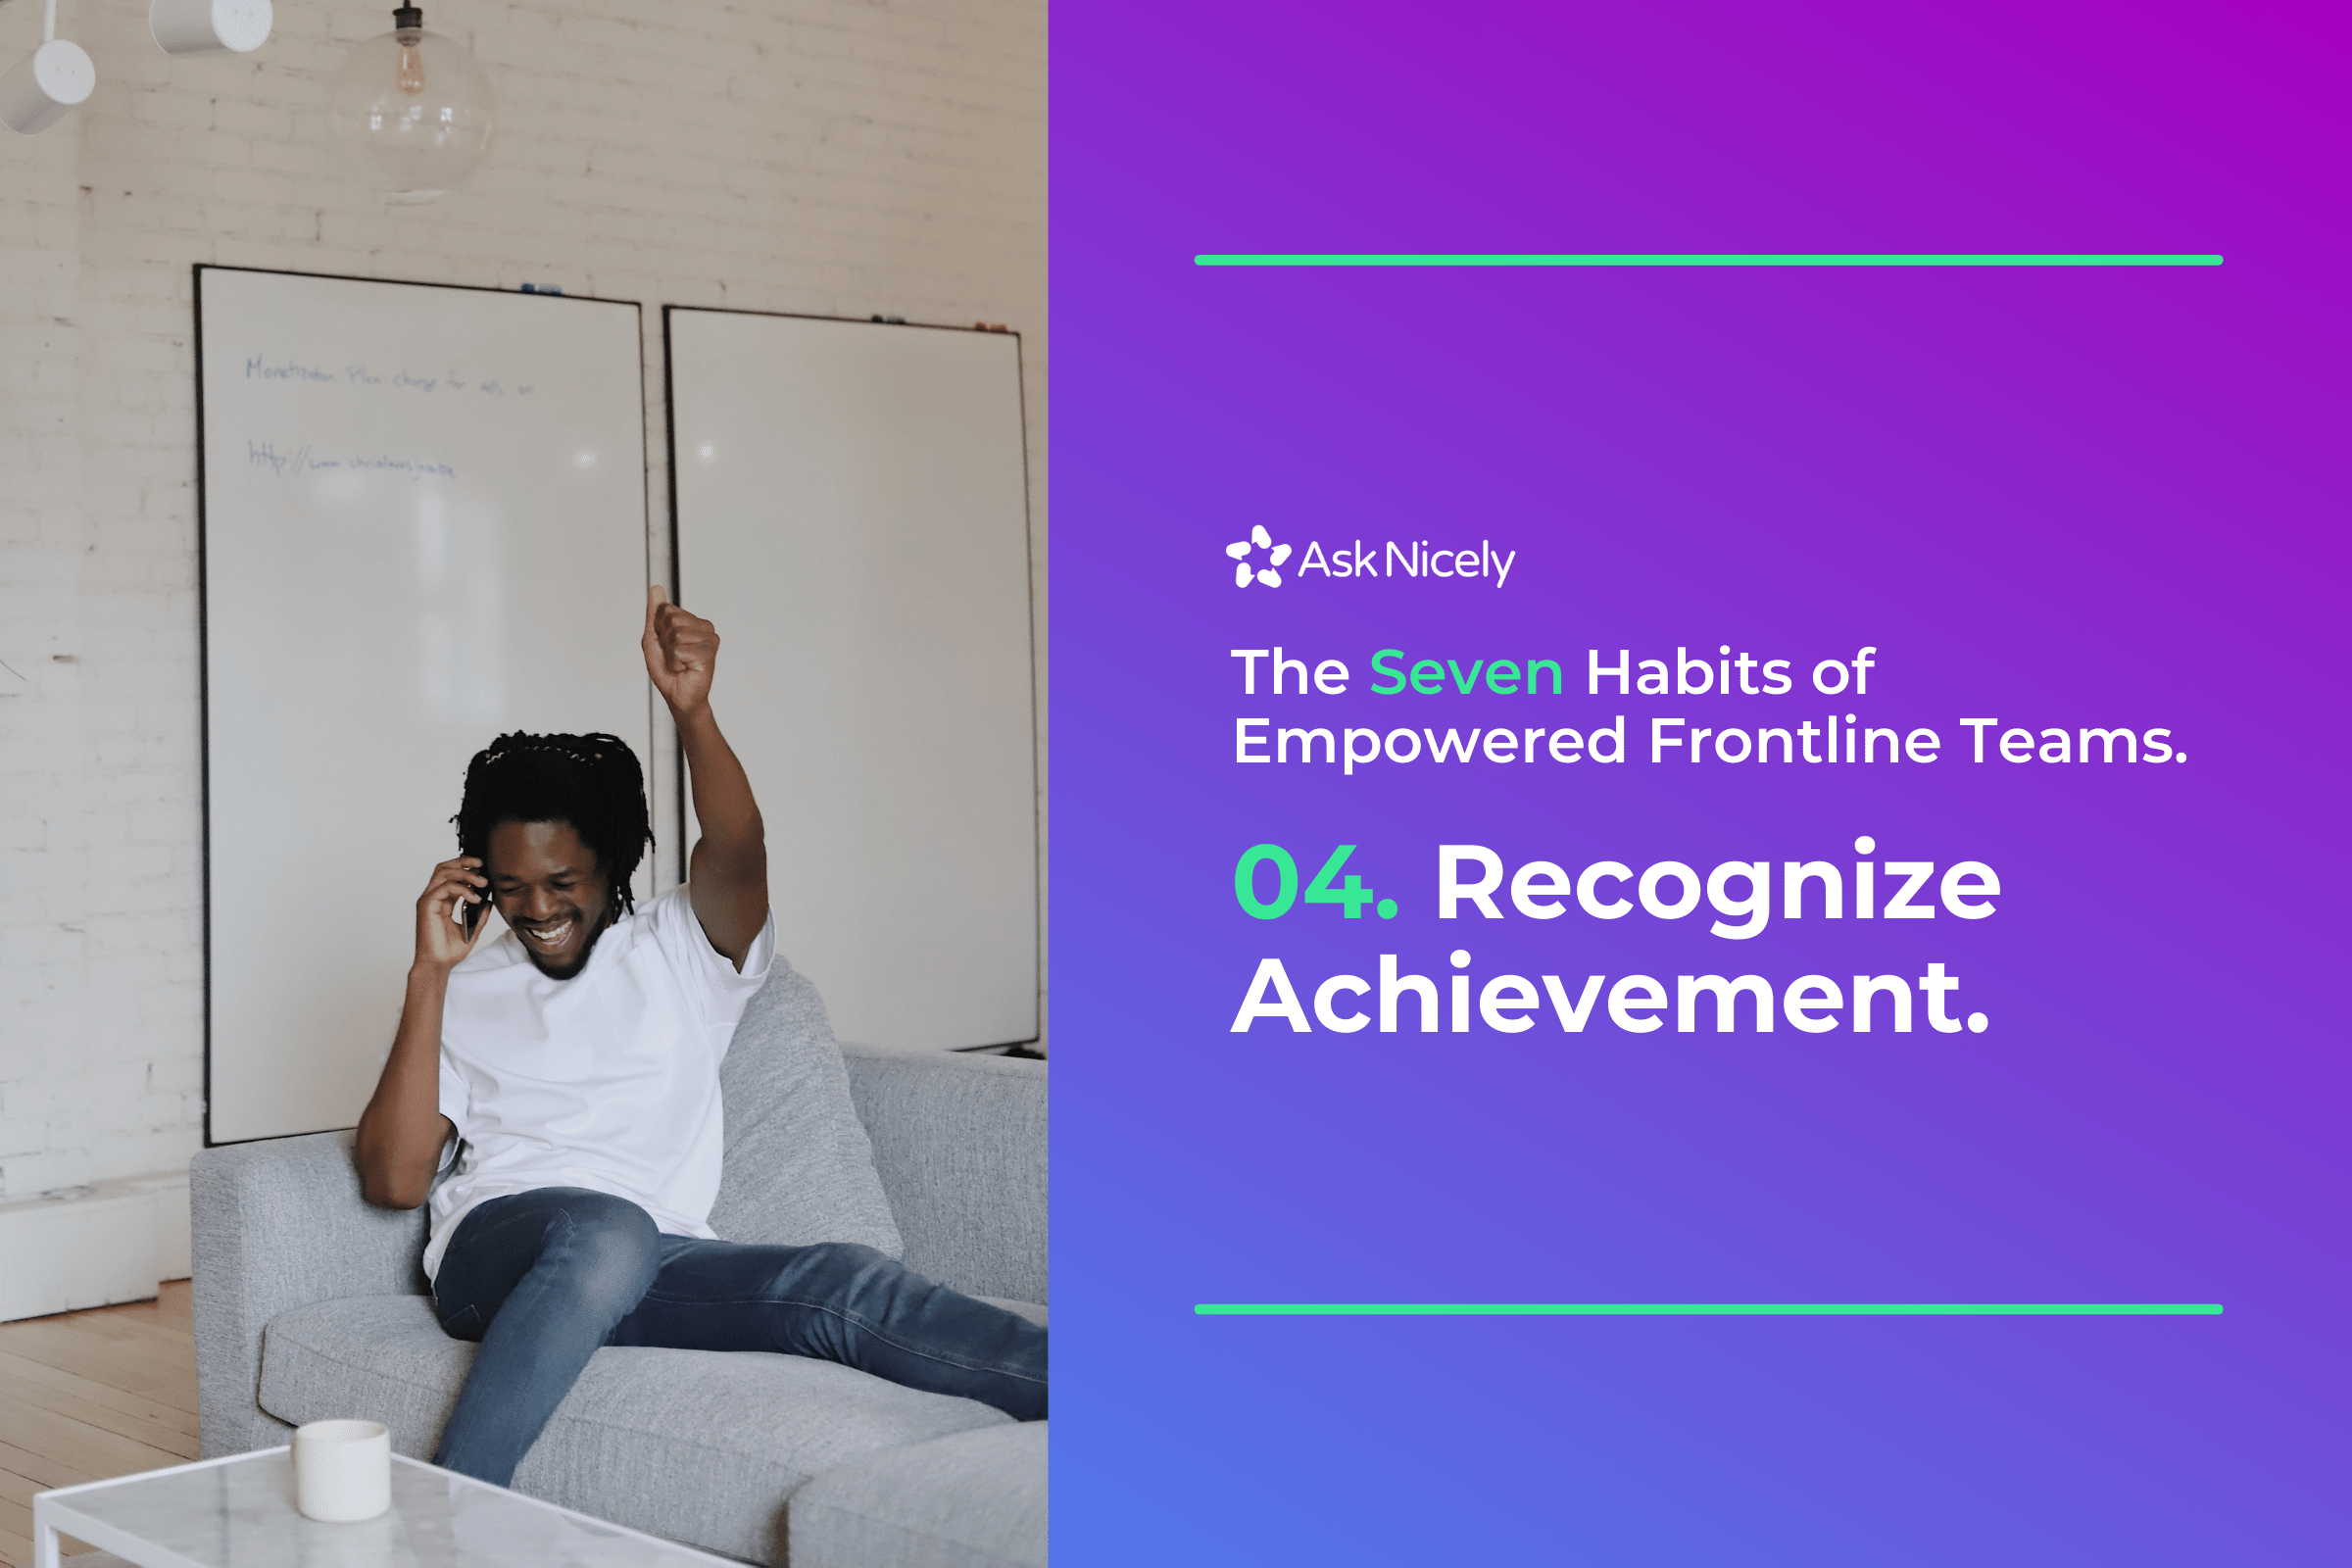 Recognize Achievement: The Seven Habits of Empowered Frontline Teams